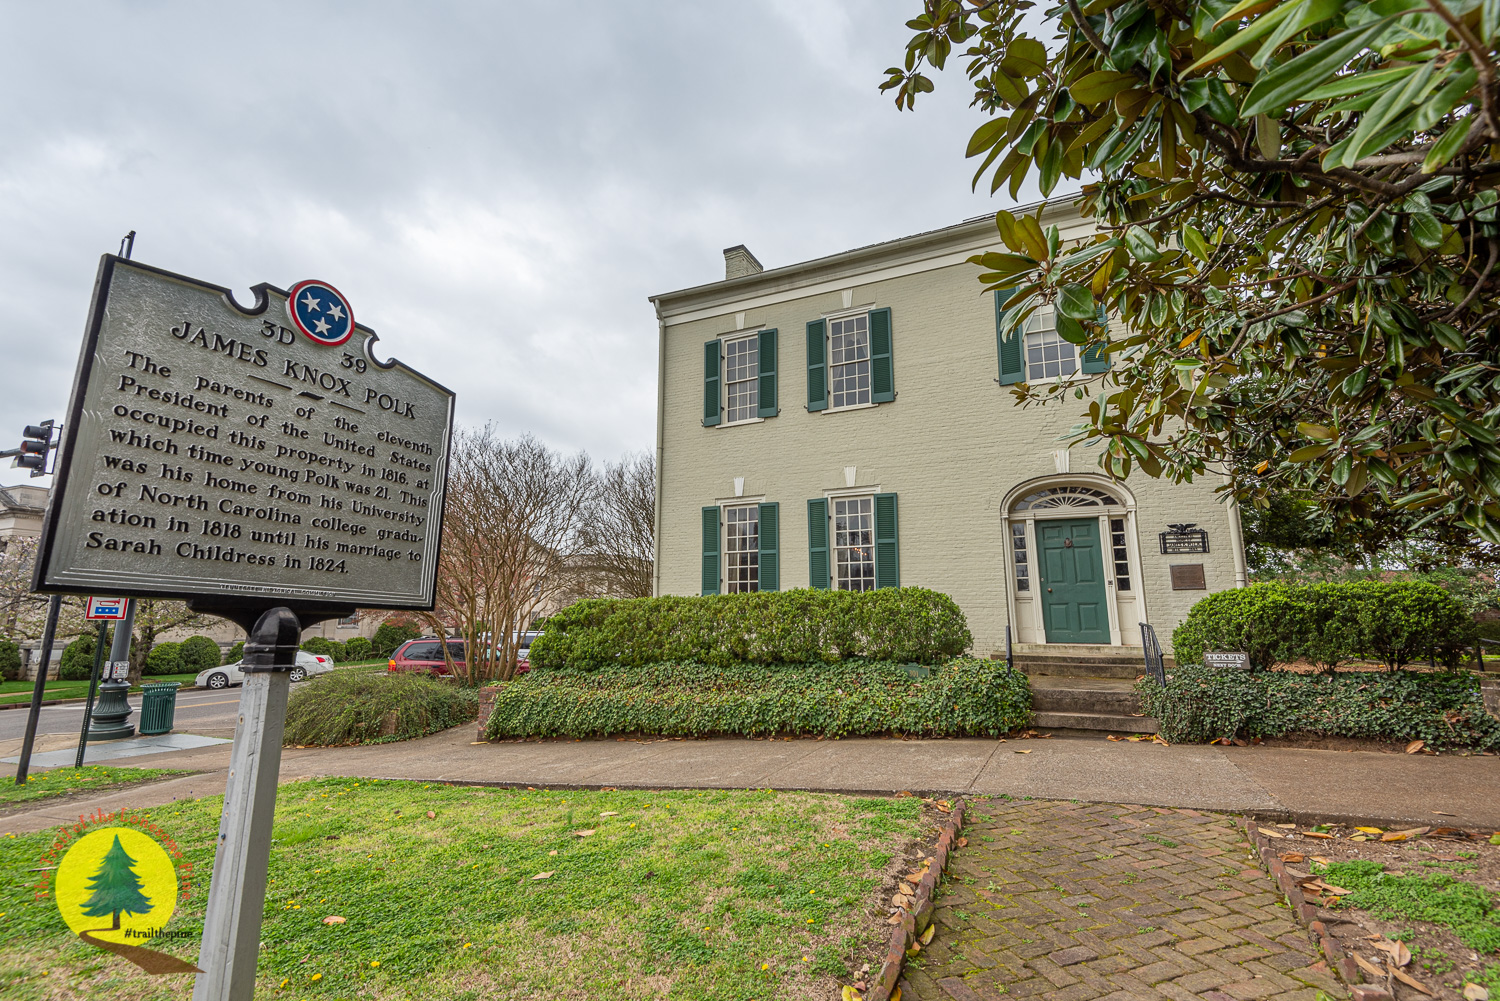 President James K. Polk Home and Museum, located in Columbia, Tennessee